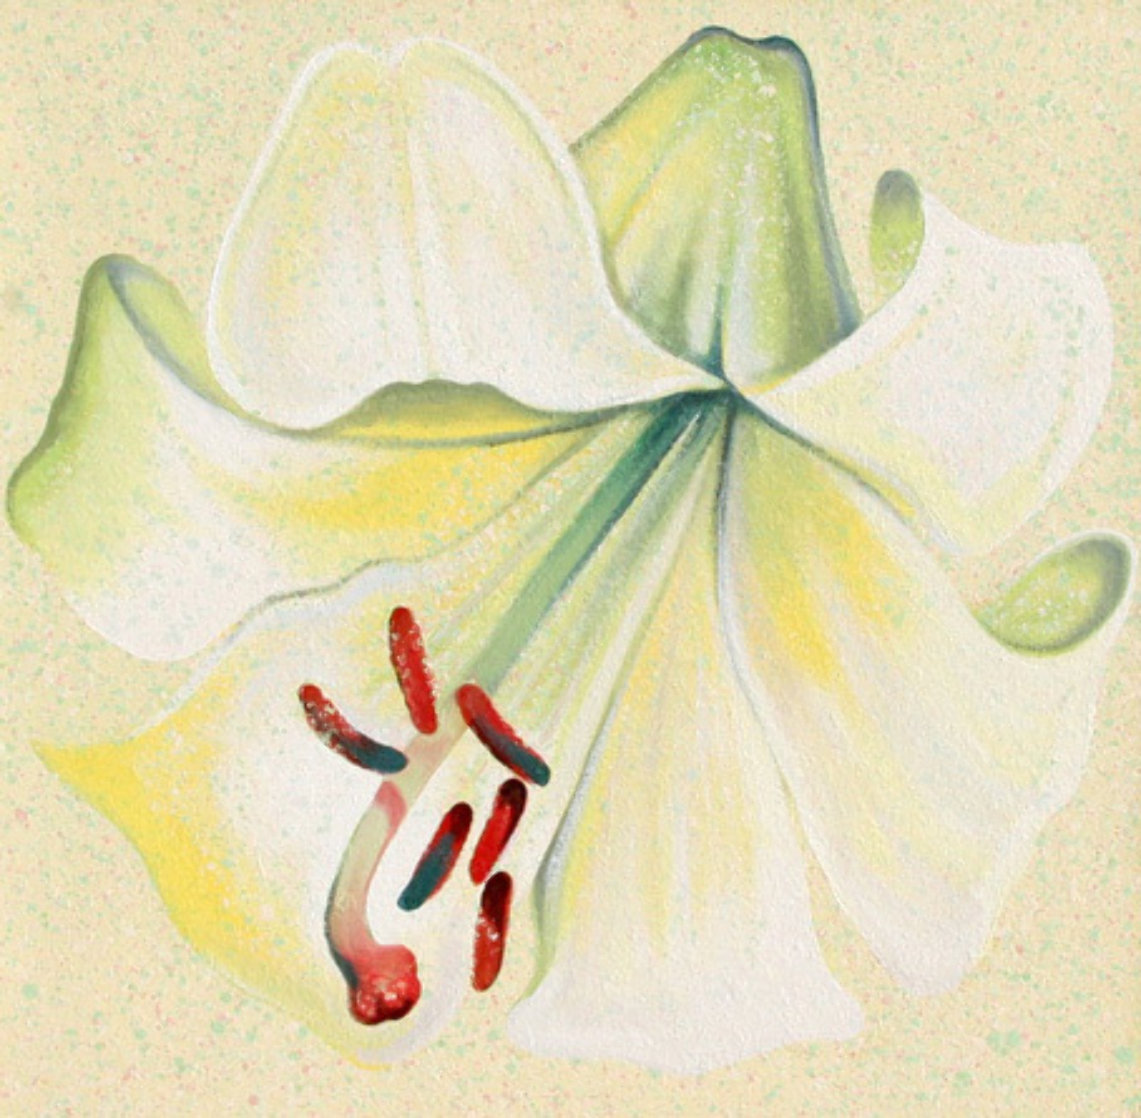 White Lily 1982 26x26 Original Painting by Lowell Blair Nesbitt